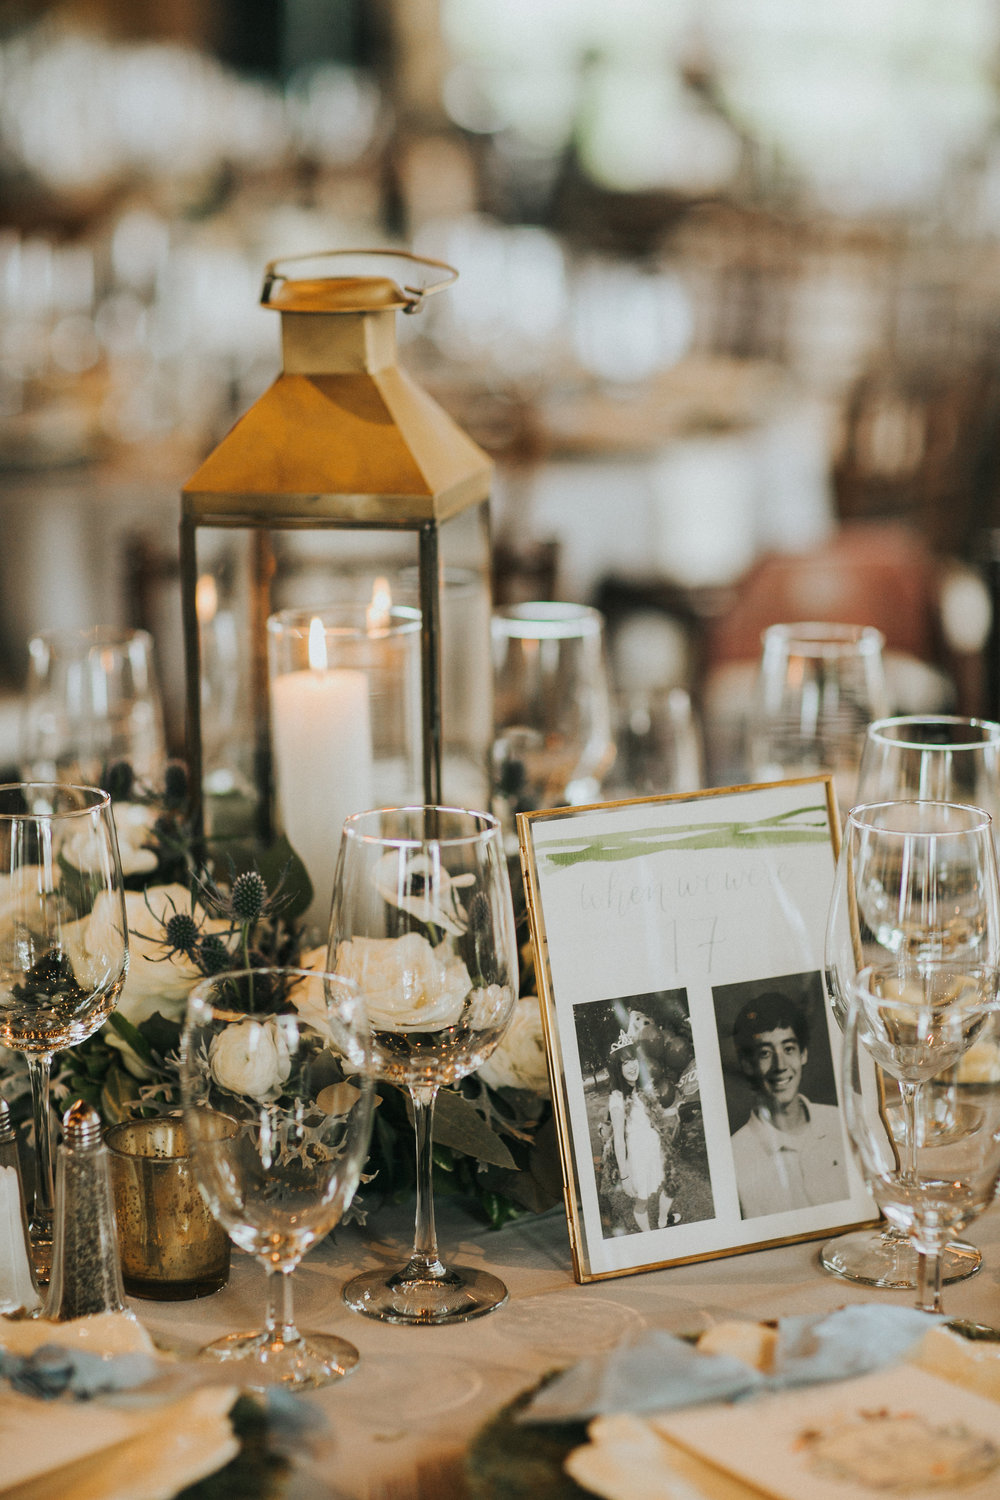 Every other table had a lantern with a floral wreath to bring more candlelit ambiance into the space. Table numbers made by  Grace Art Market  showcased photos of us from ages 1 to 20.